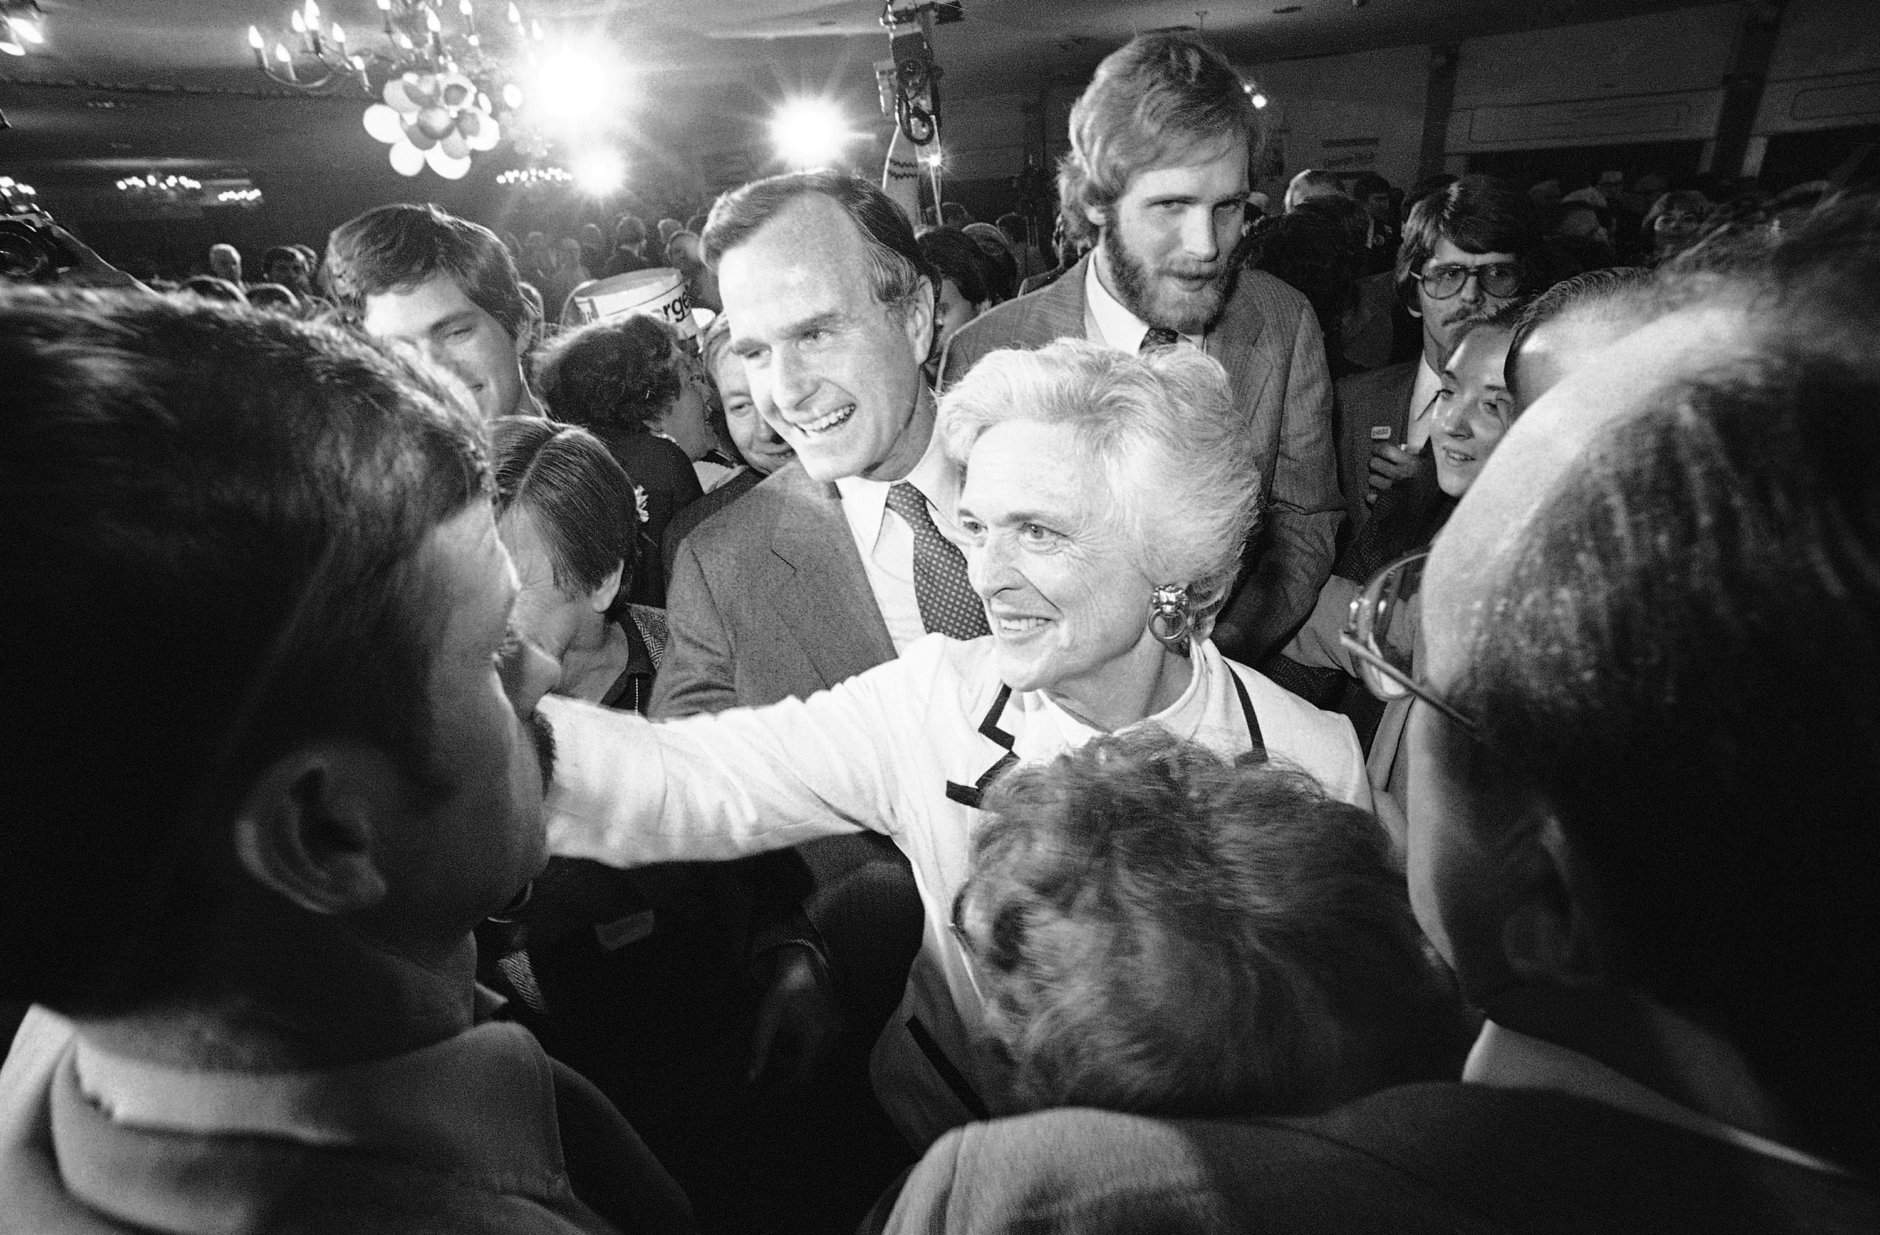 Former CIA director George Bush and his wife, Barbara, smile and shake hands with supporters as Bush left a Concord hotel ballroom after he spoke with supporters in Concord on Tuesday, Feb. 26, 1980. Bush, who was seeking the Republican presidential nomination, received 22 percent of the vote, while rival Ronald Reagan received 52 percent. (AP Photo)